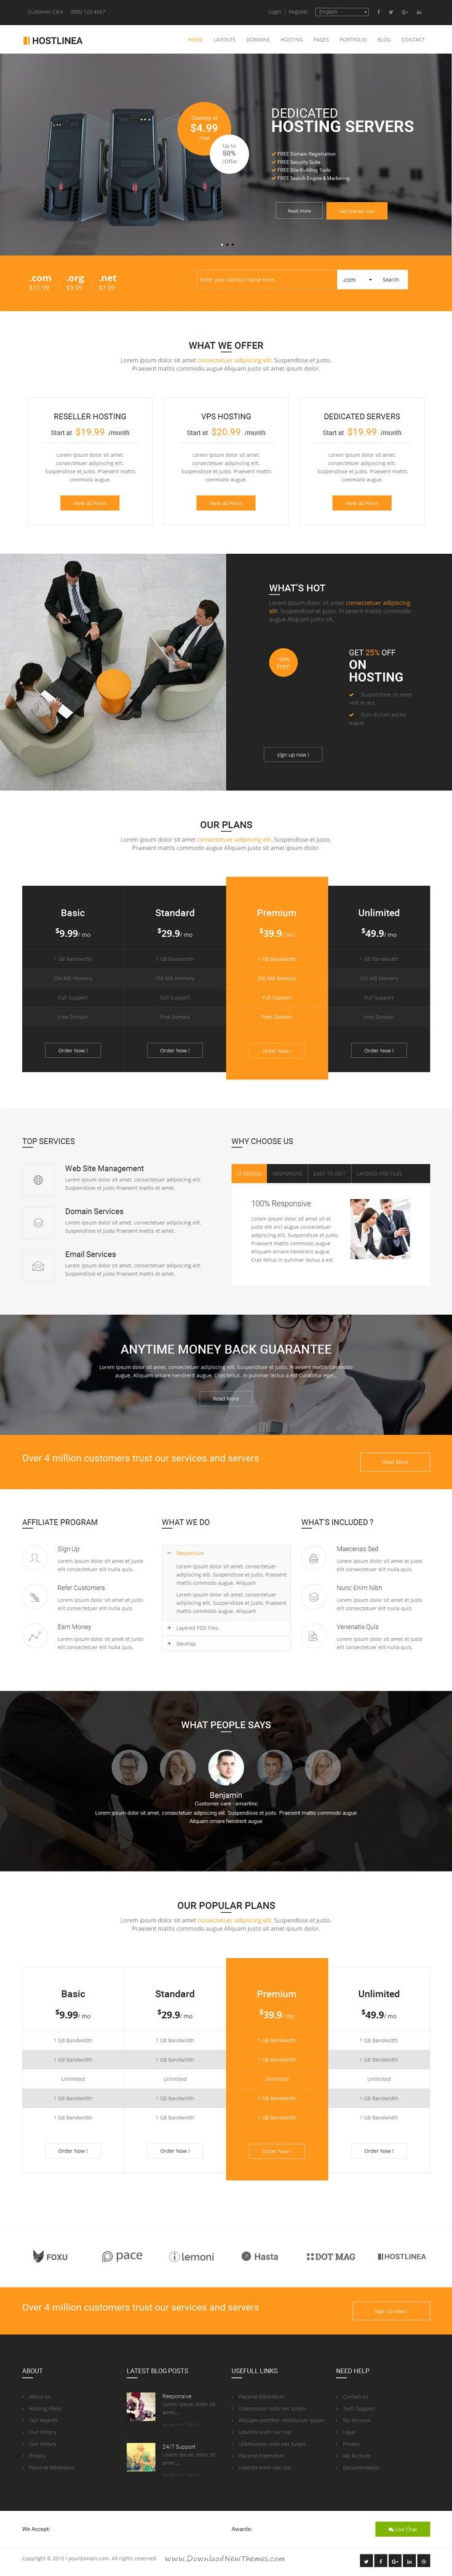 Hostlinea is simple, clean and Professional Responsive WordPress theme. It comes with 8+ Home pages, 4 different layouts and Many more inner Pages, Awesome Slideshows. #webhosting #webdesign